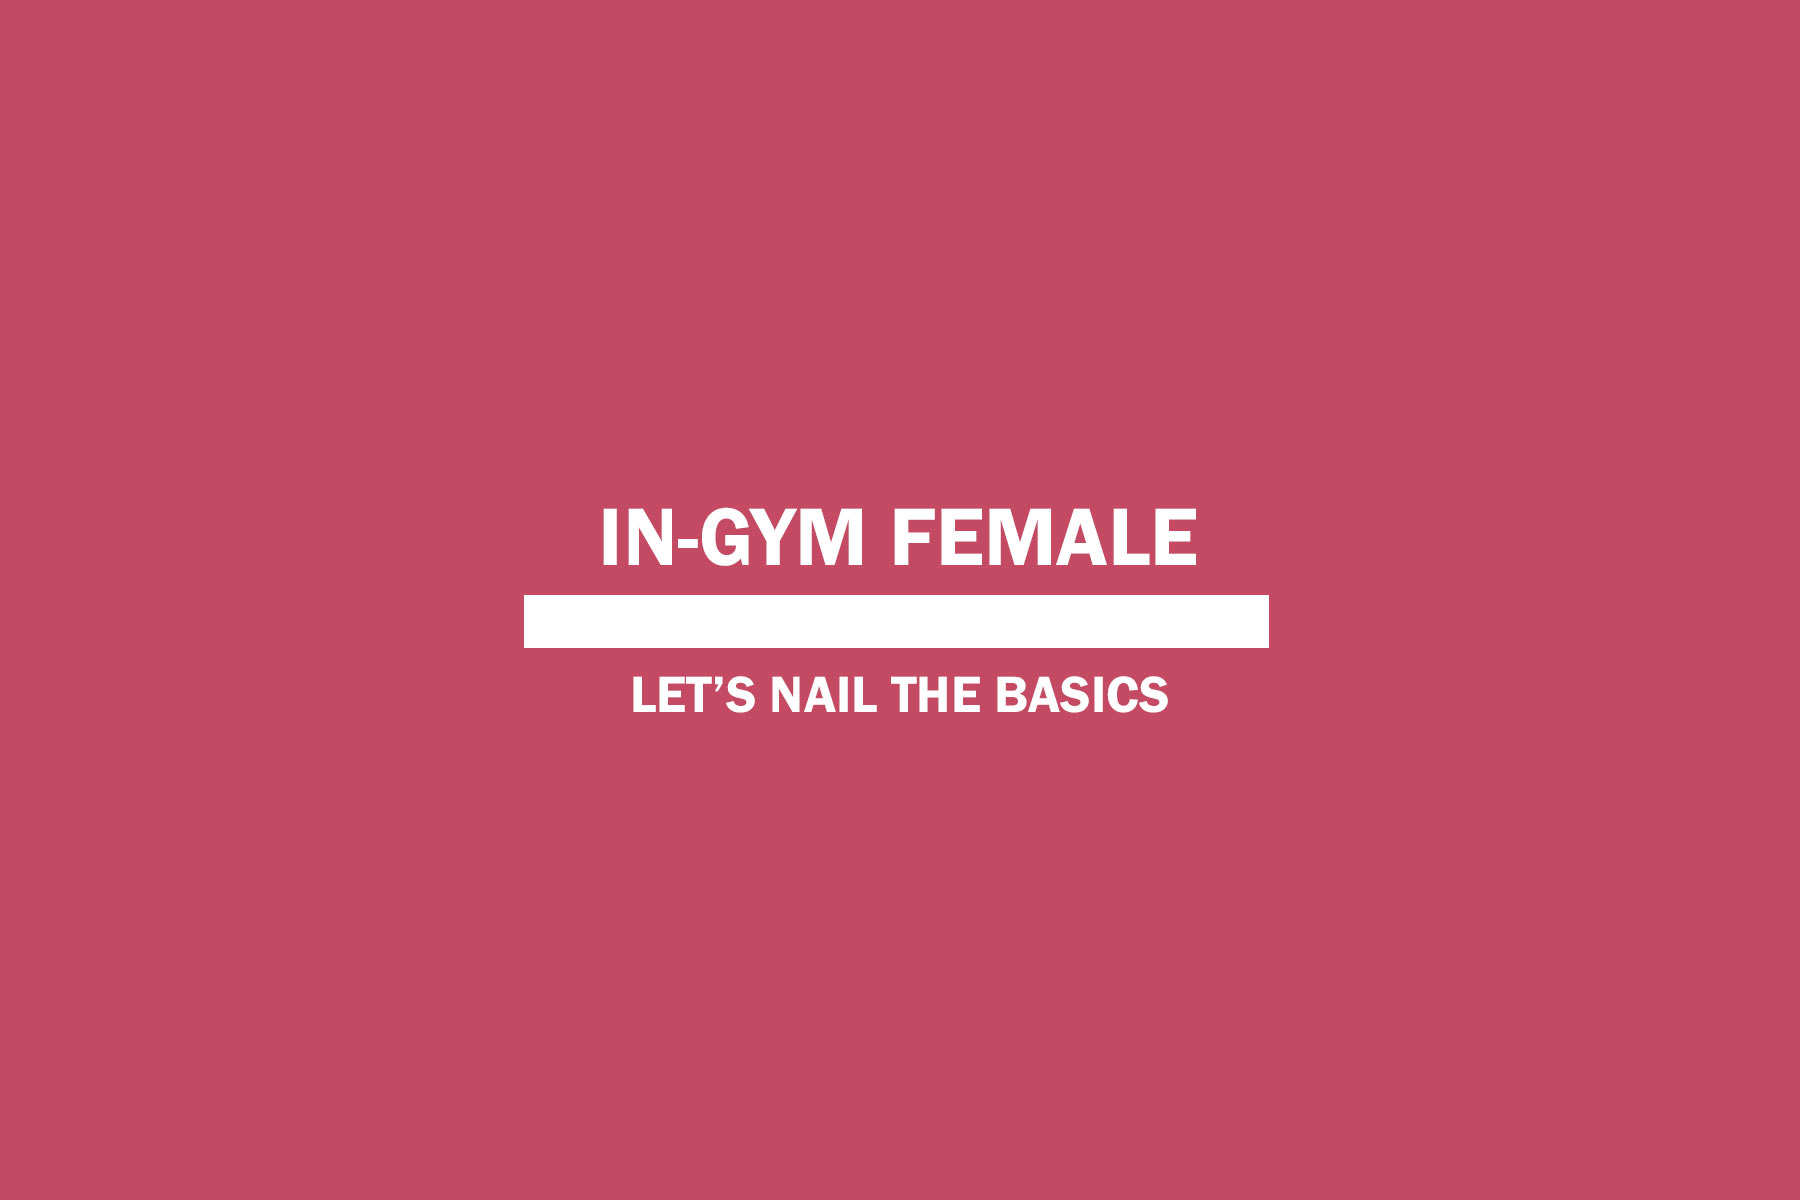 In-gym Female 3rd of June to 24th of June